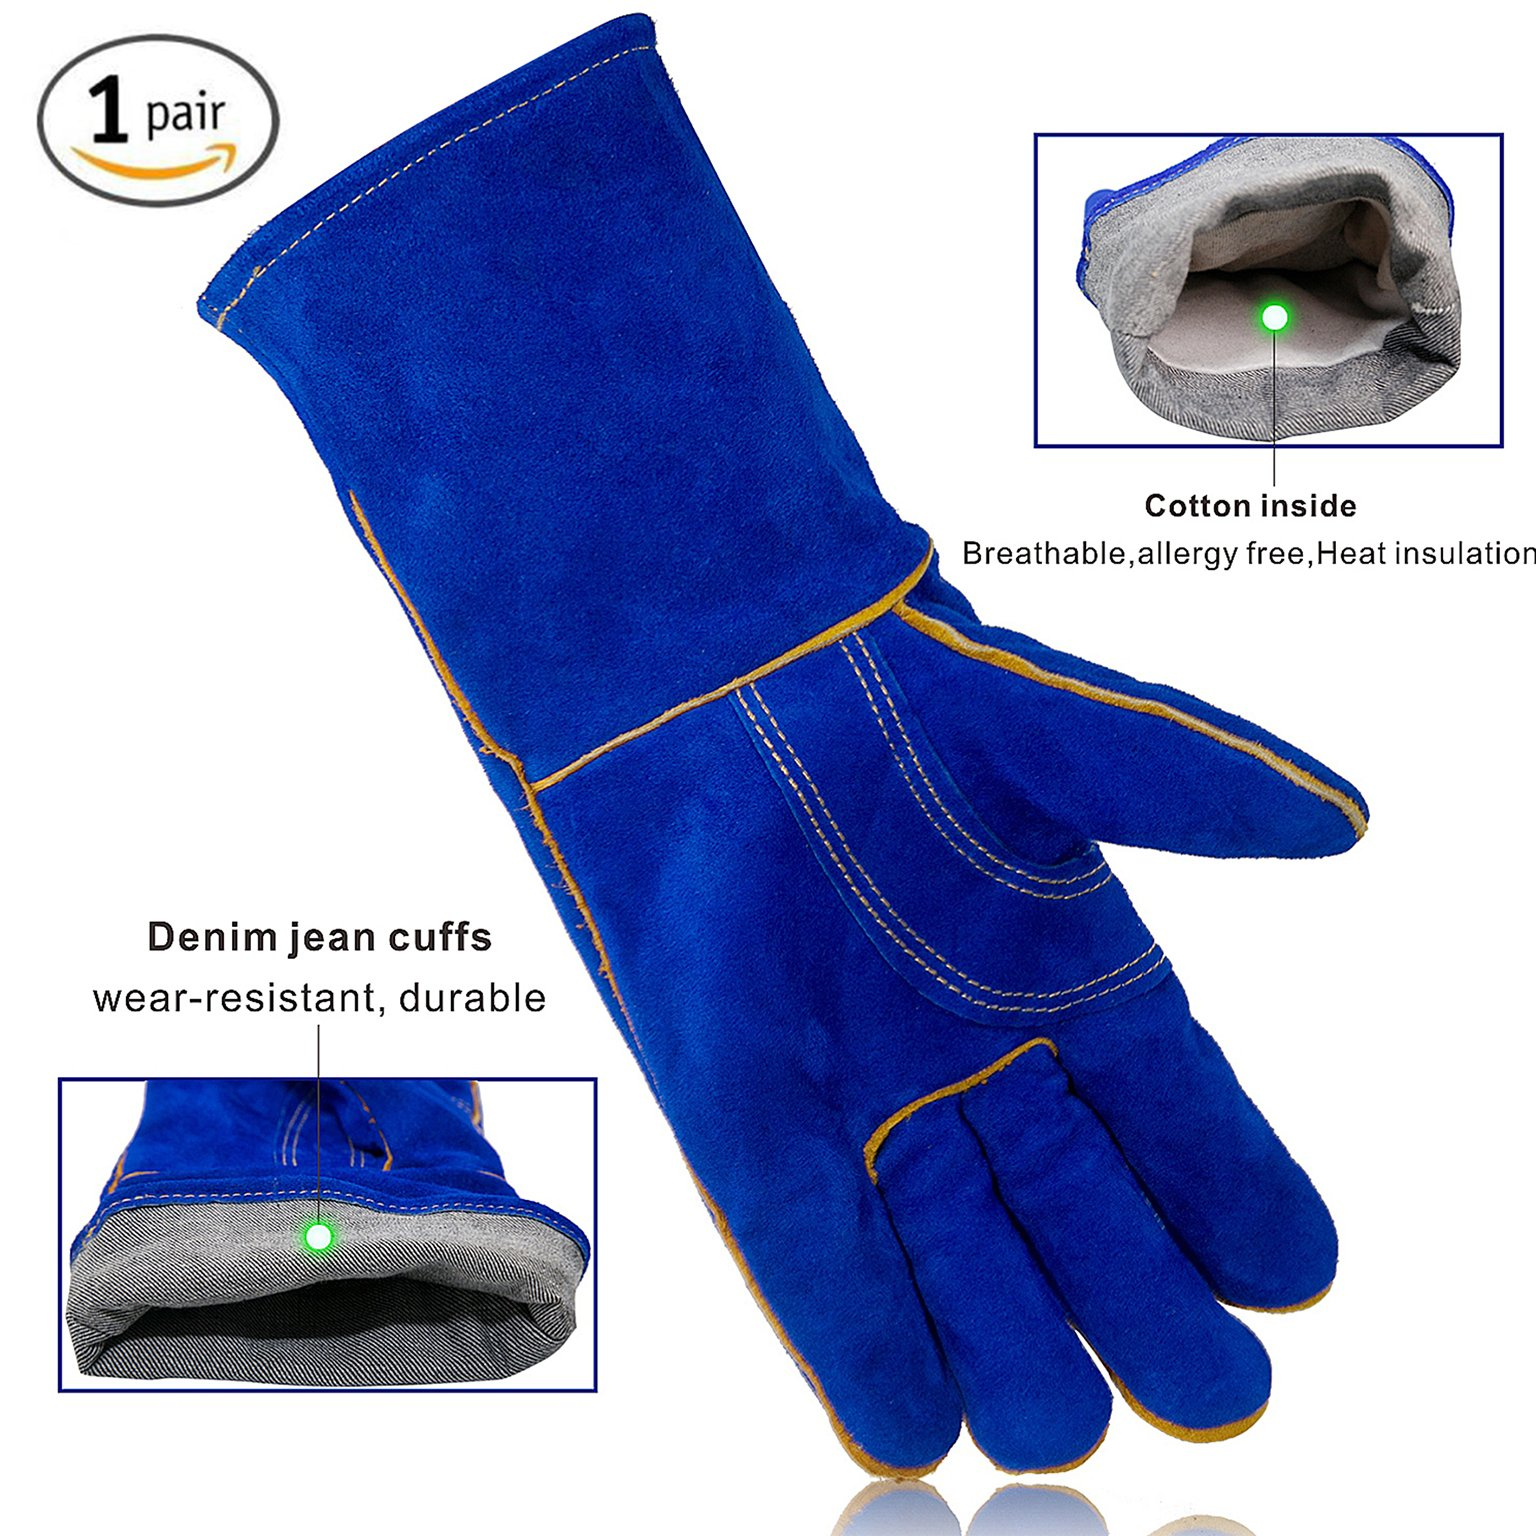 KIM YUAN Leather Welding Gloves - Heat/Fire Resistant, Perfect for Gardening/Oven/Grill/Mig/Fireplace/Stove/Pot Holder/ Tig Welder/Animal Handling/BBQ - 14inches by KIM YUAN (Image #2)